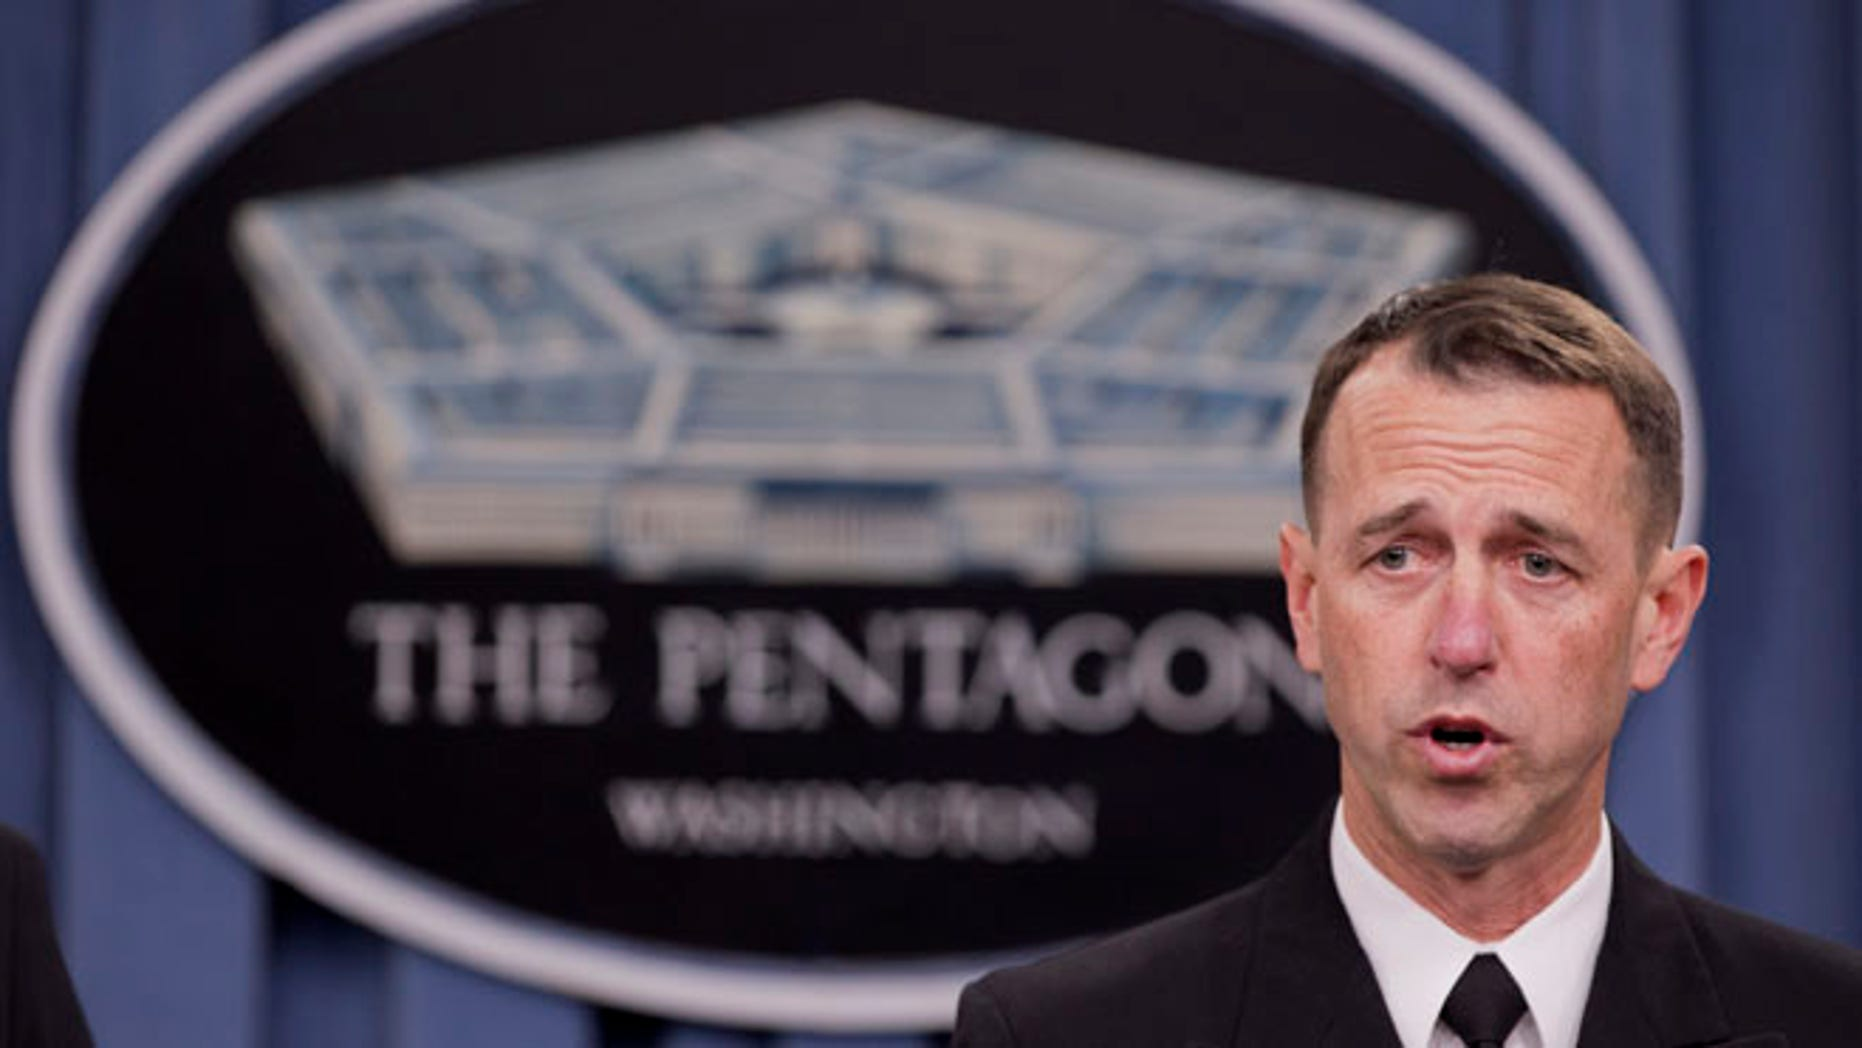 Feb. 4, 2014: Adm. John M. Richardson, director of the Naval Nuclear Propulsion Program, speaks during a news conference at the Pentagon.